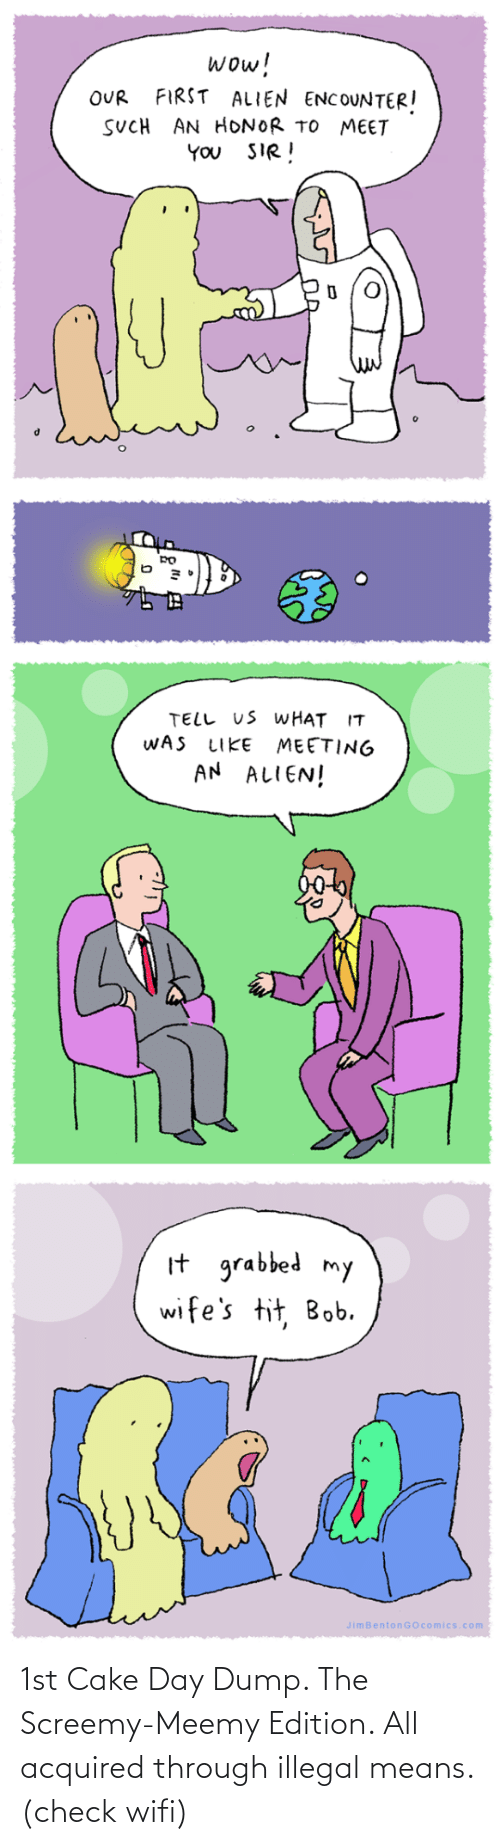 such: wow!  FIRST ALIEN ENCOUNTER!  OUR  SUCH AN HONOR TO MEET  YOU SIR!  TELL US WHAT IT  WAS  MEETING  AN ALIEN!  LIKE  It grabbed my  wife's tit, Bob.  JimBentonGOcomics.com 1st Cake Day Dump. The Screemy-Meemy Edition. All acquired through illegal means. (check wifi)